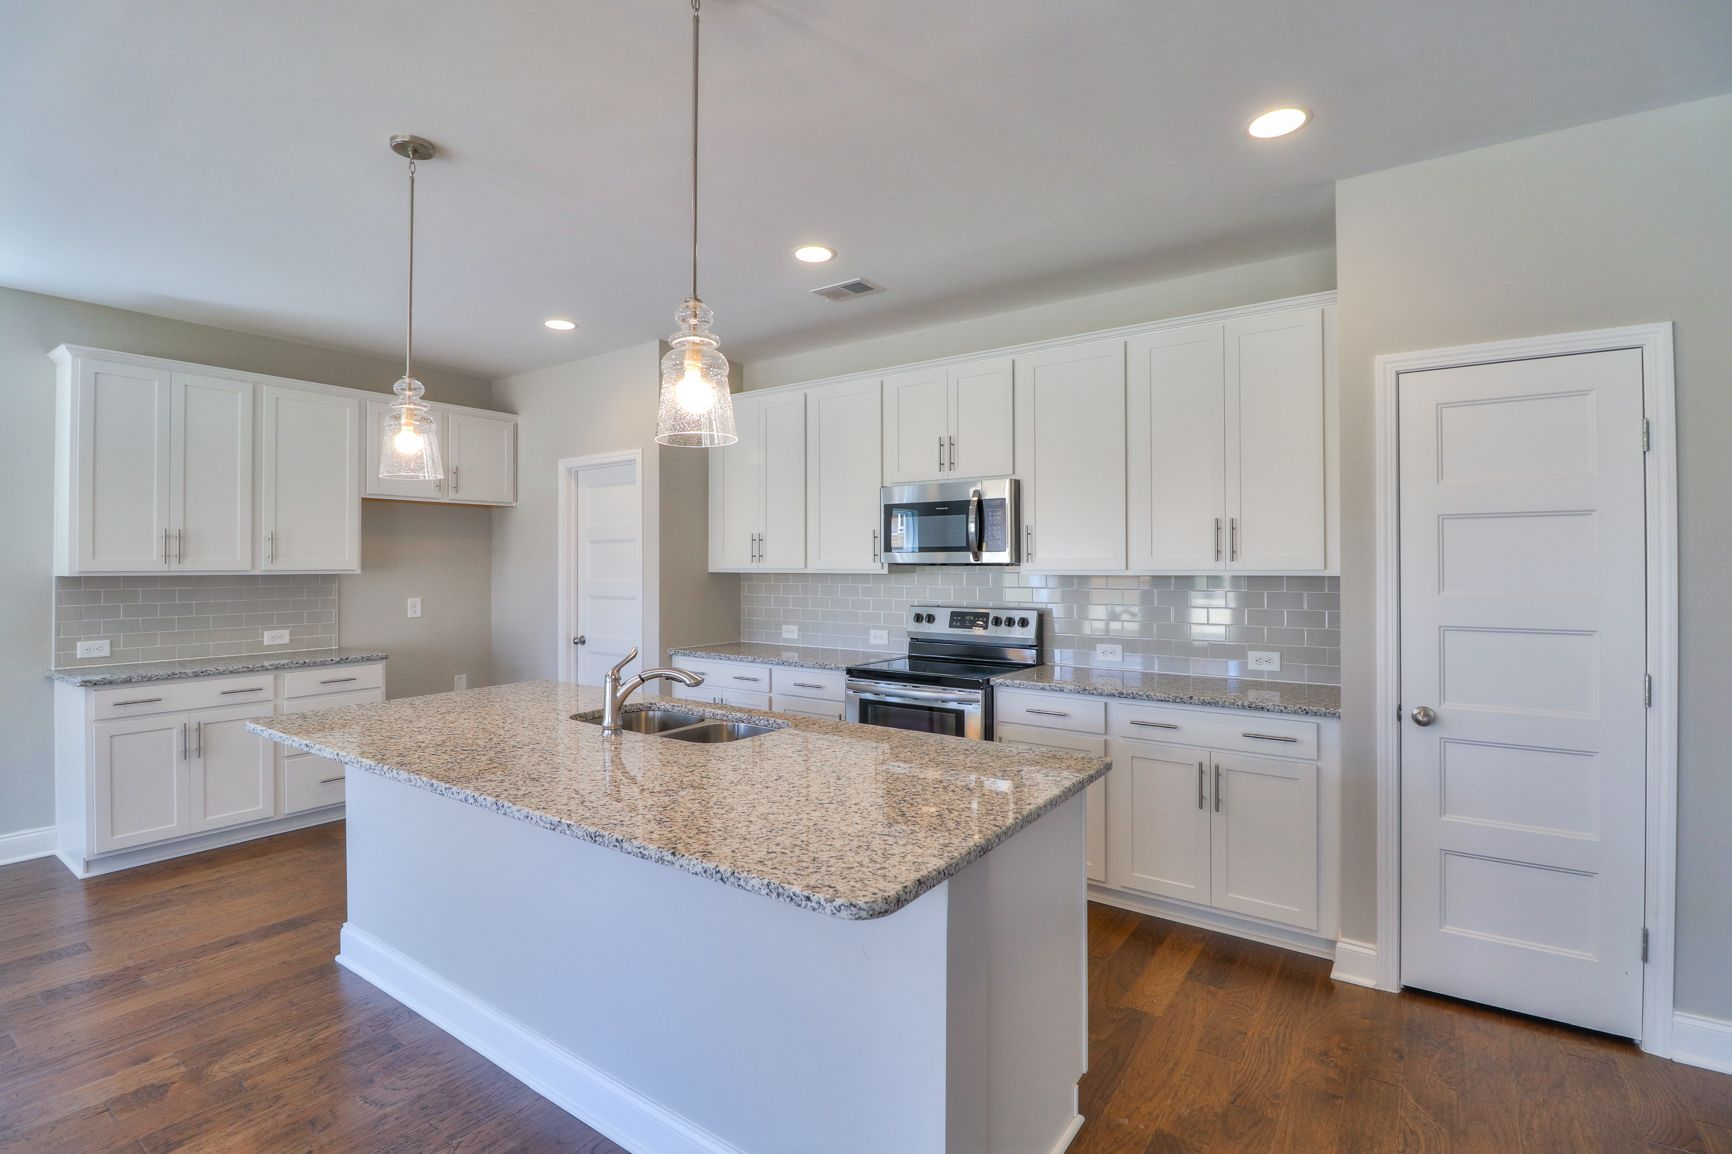 Kitchen featured in The Acadia By Goodall Homes in Chattanooga, TN